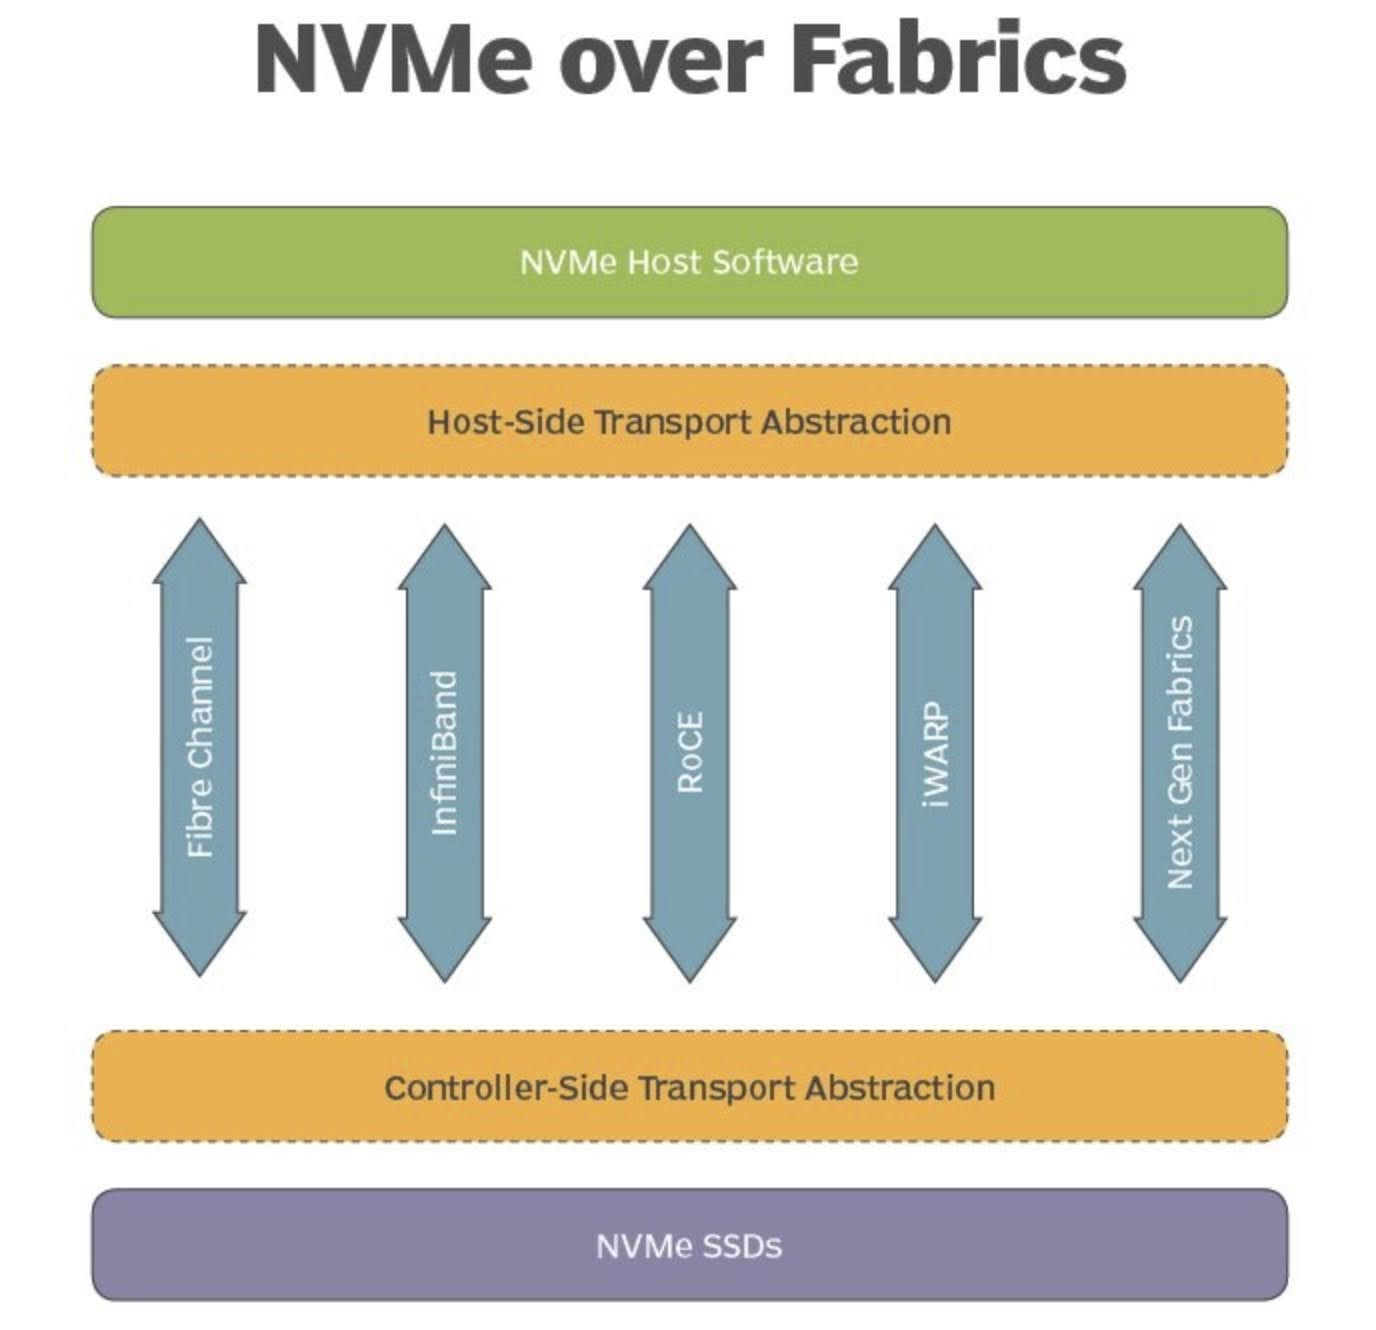 NVMe-oF uses a message-based model for communication between a host and a target storage device.